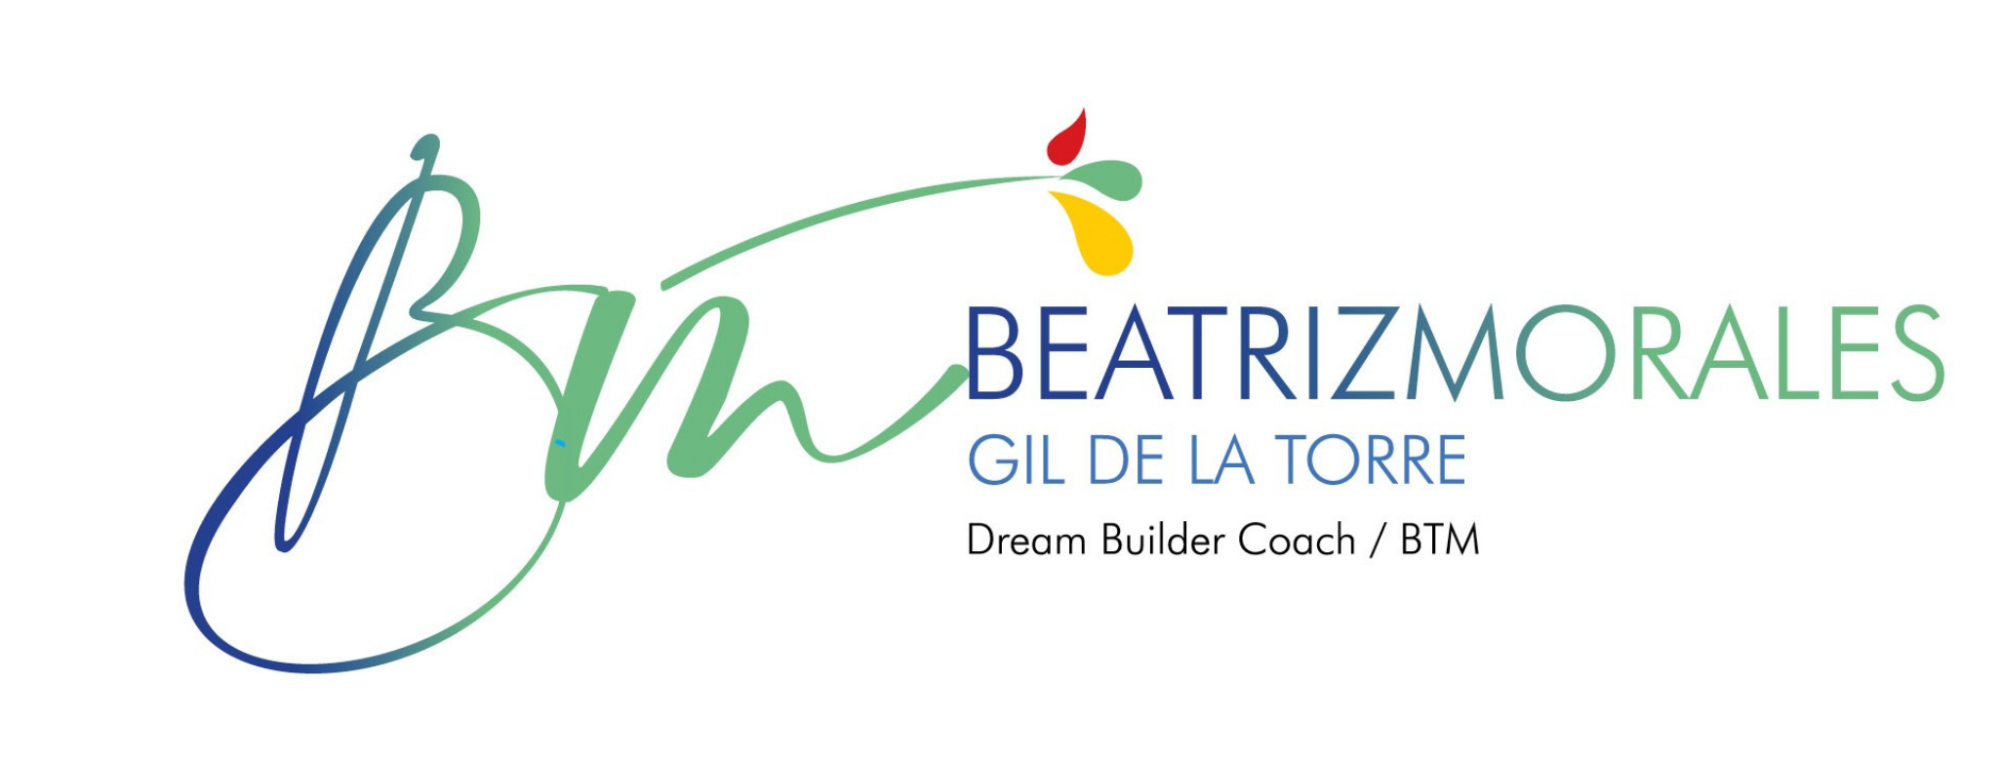 Beatriz Morales Gil de la Torre - Dream Builder Coach certified by Brave Thinking Institute